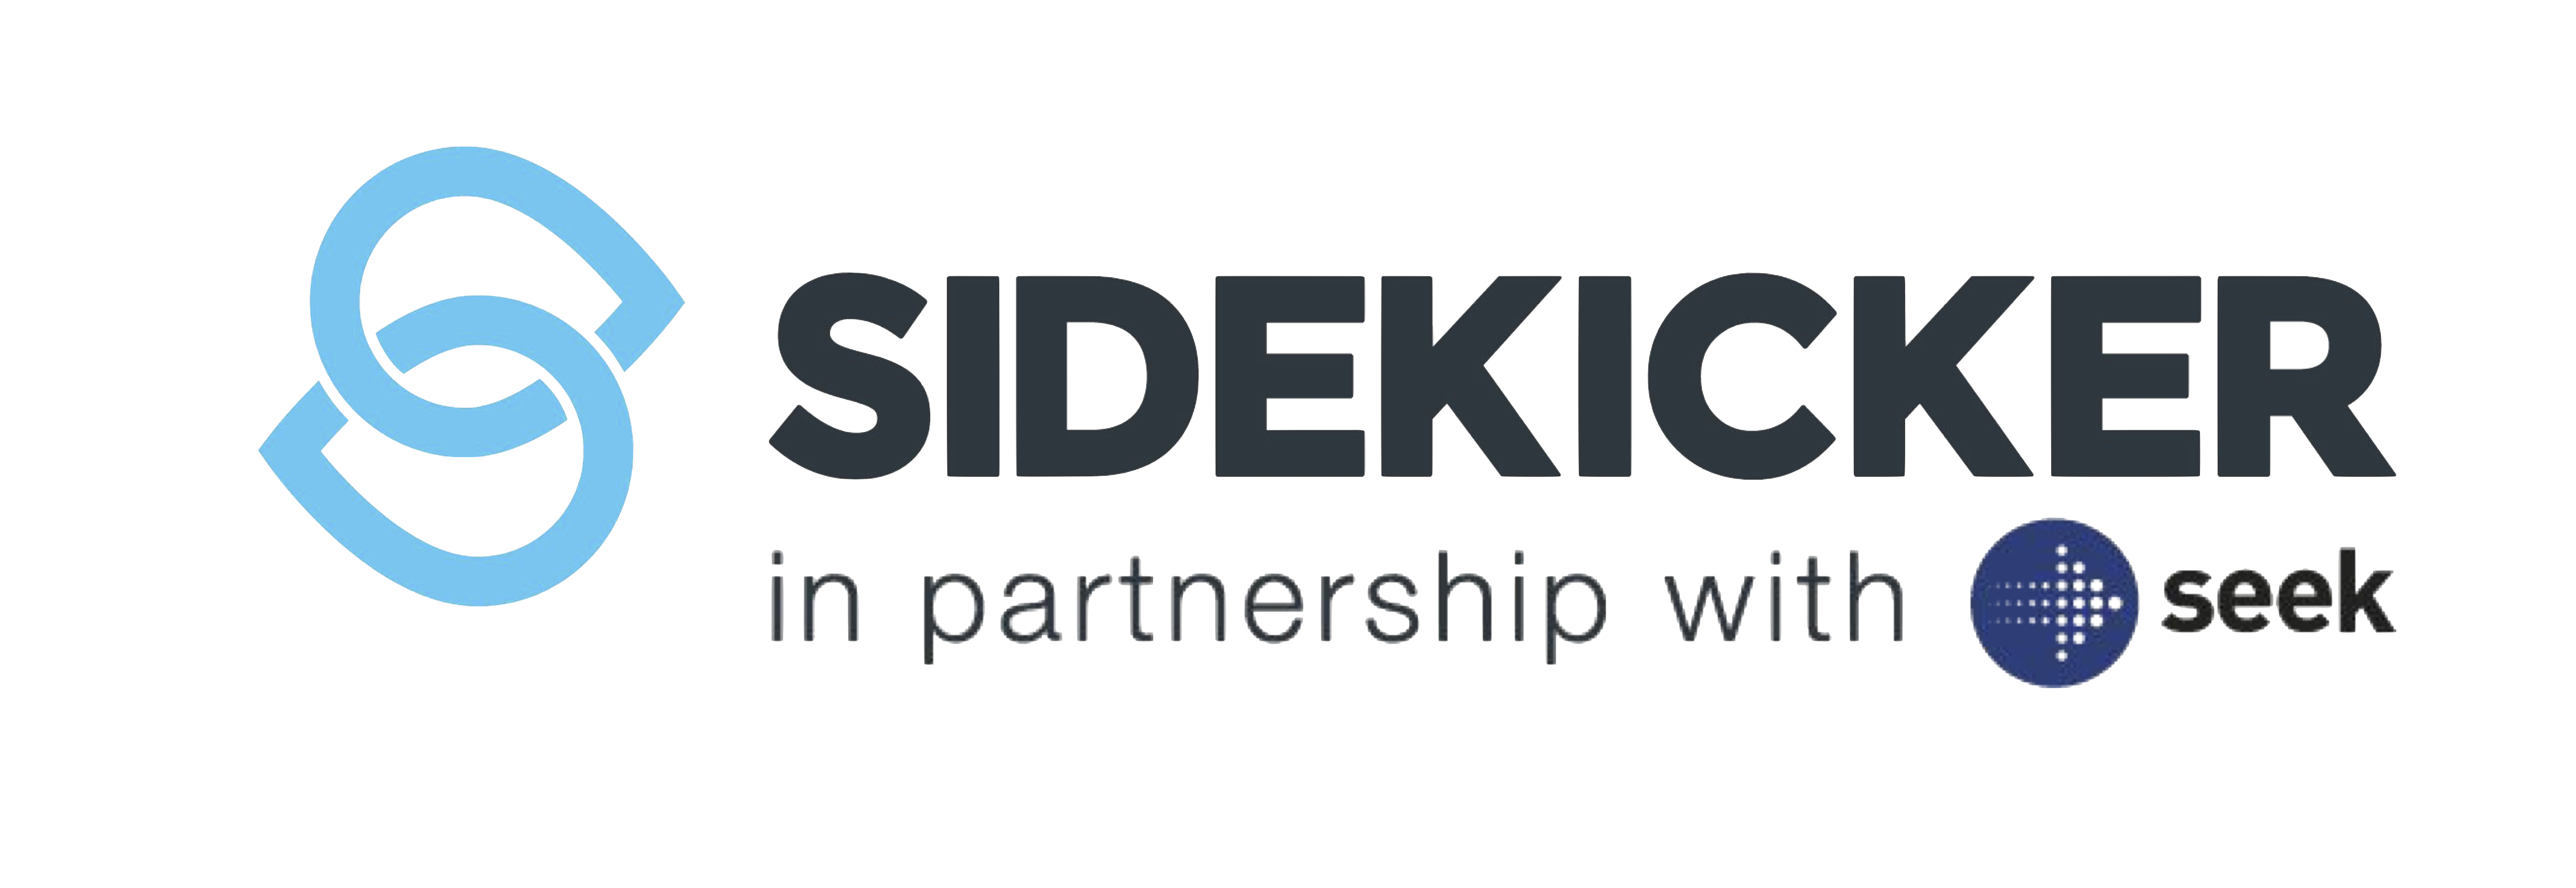 Corporate Sponsor - Sidekicker